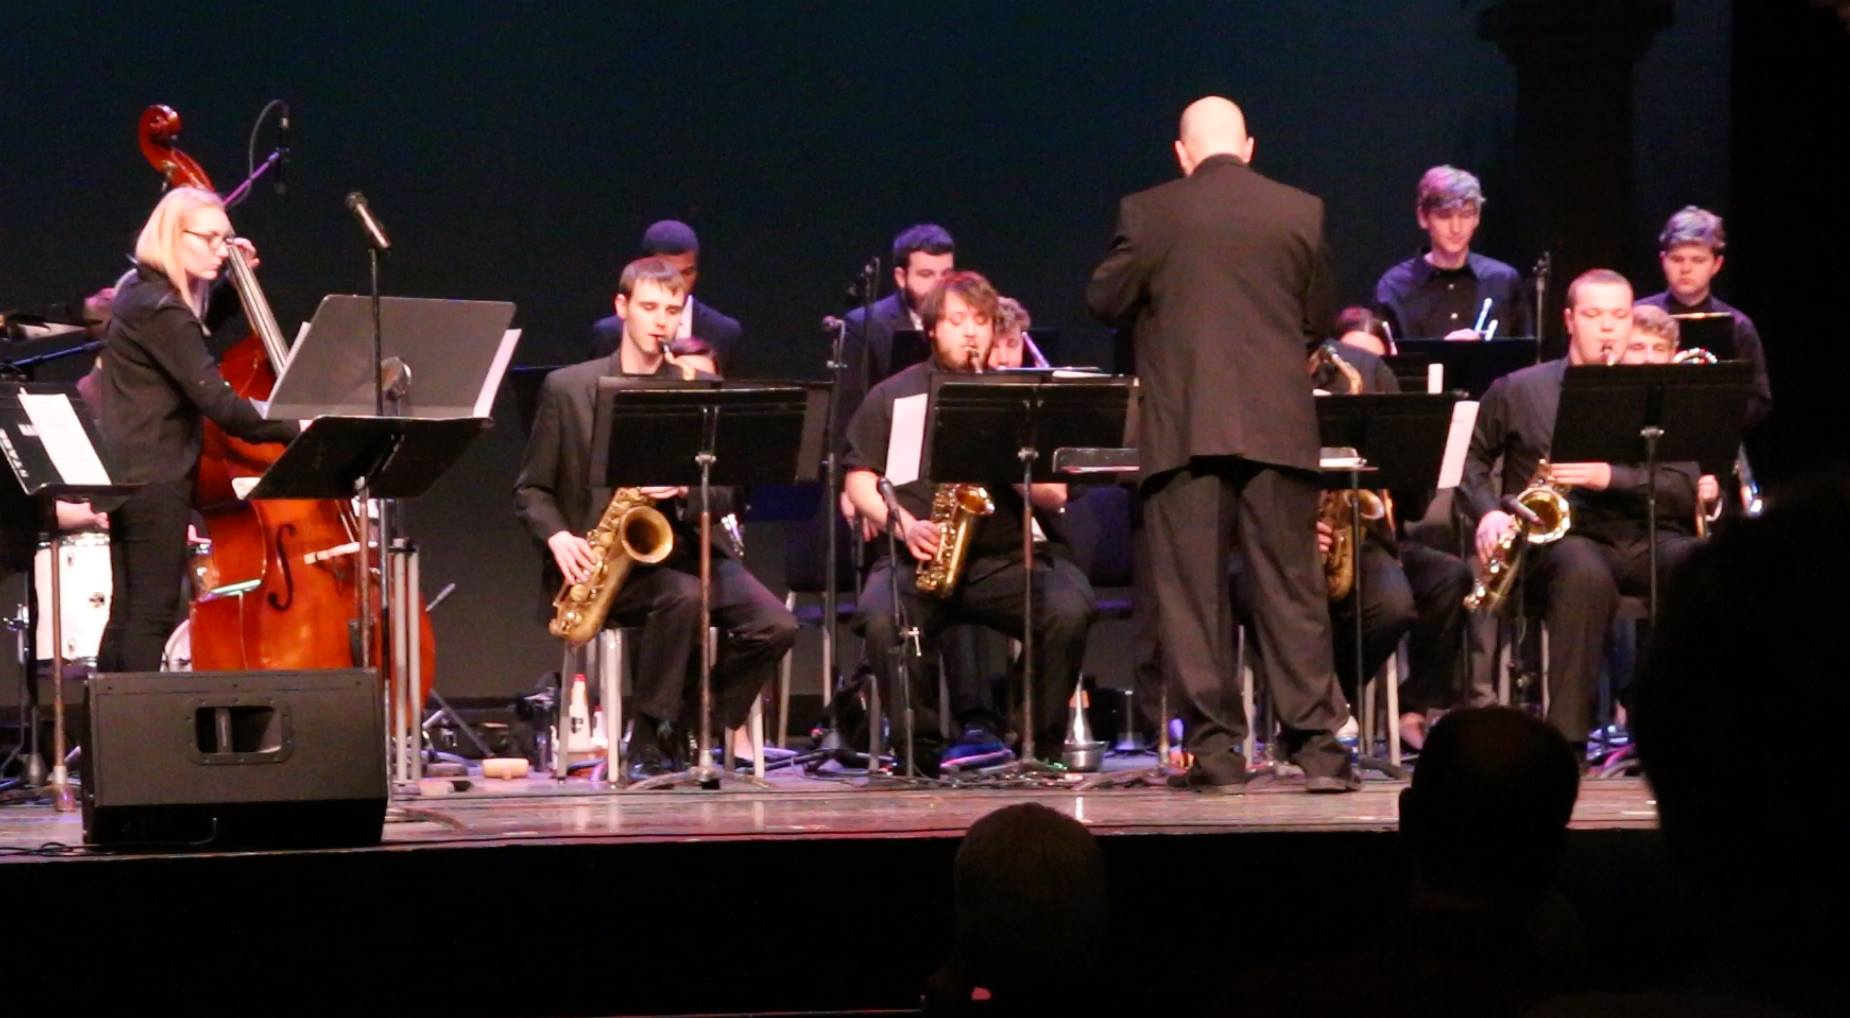 David Jumper conducts the Jazz Ambassadors.